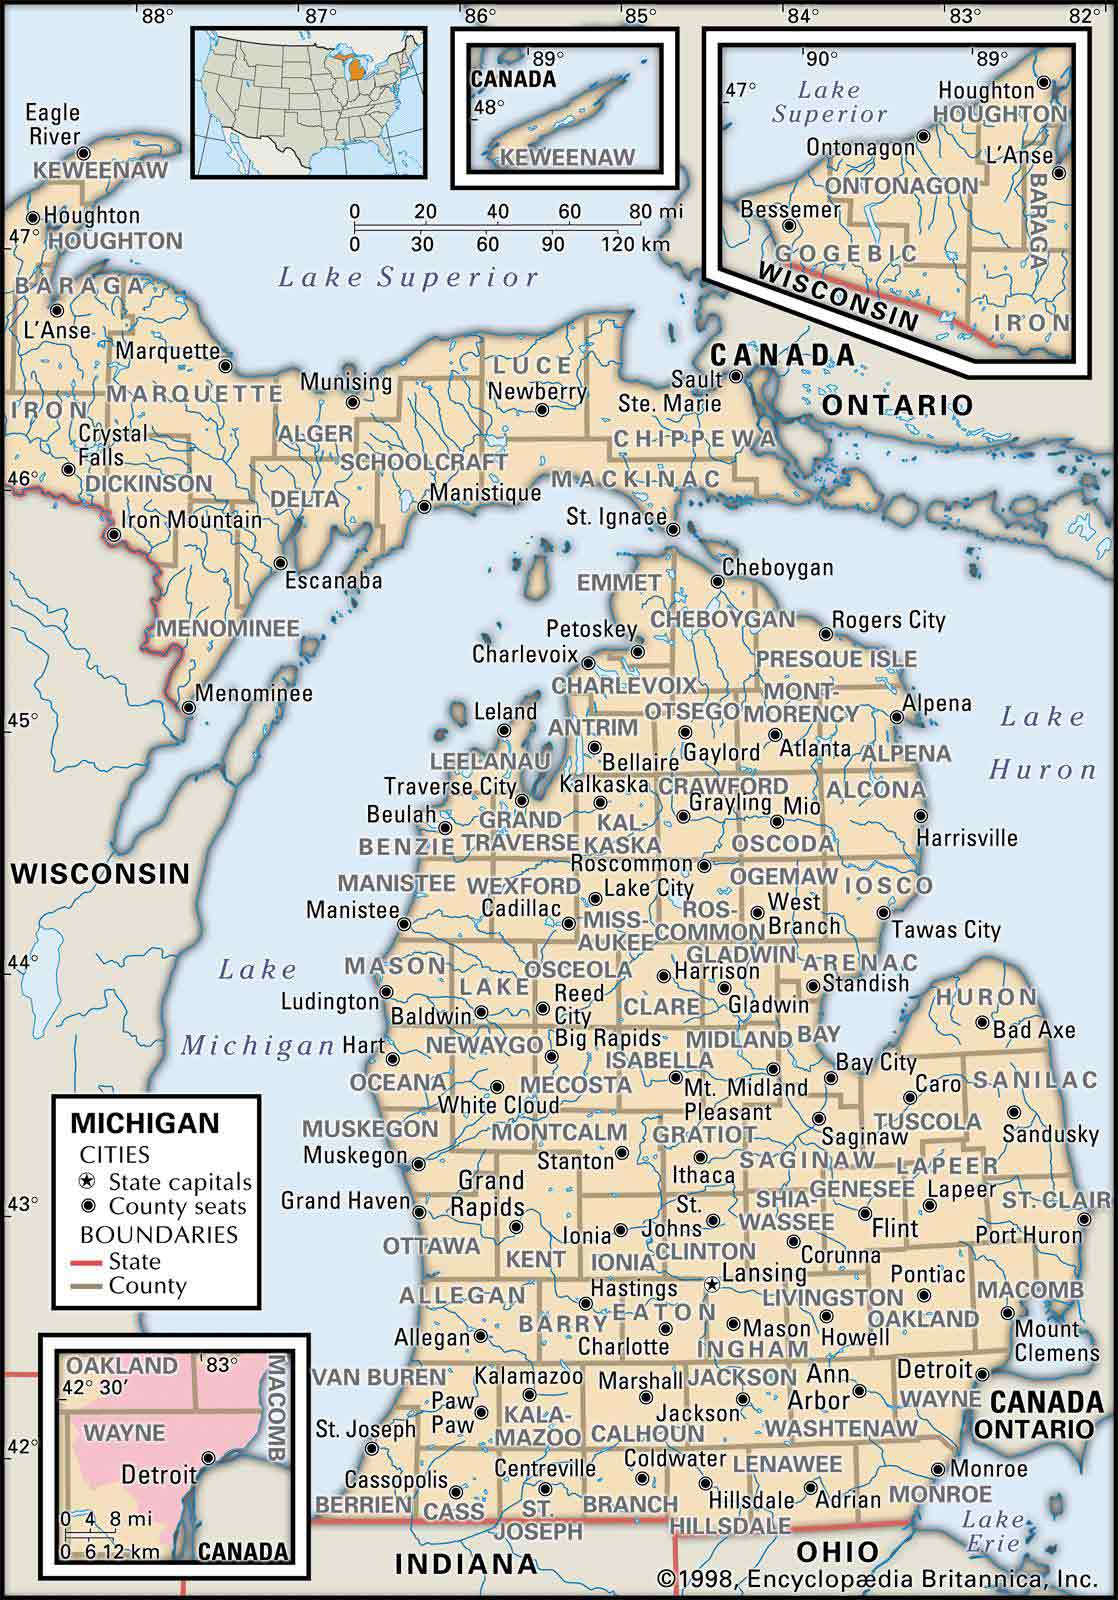 Old Historical City, County and State Maps of Michigan on wisconsin county map with roads, united states map with roads, clinton county map with roads, michigan county map with roads, denton county map with roads, gratiot county roads, wyoming map with roads, alabama county map with roads, pennsylvania county map with roads, jackson map with roads, hamilton county map with roads, georgia county map with roads, ohio county map with roads, dallas county map with roads,